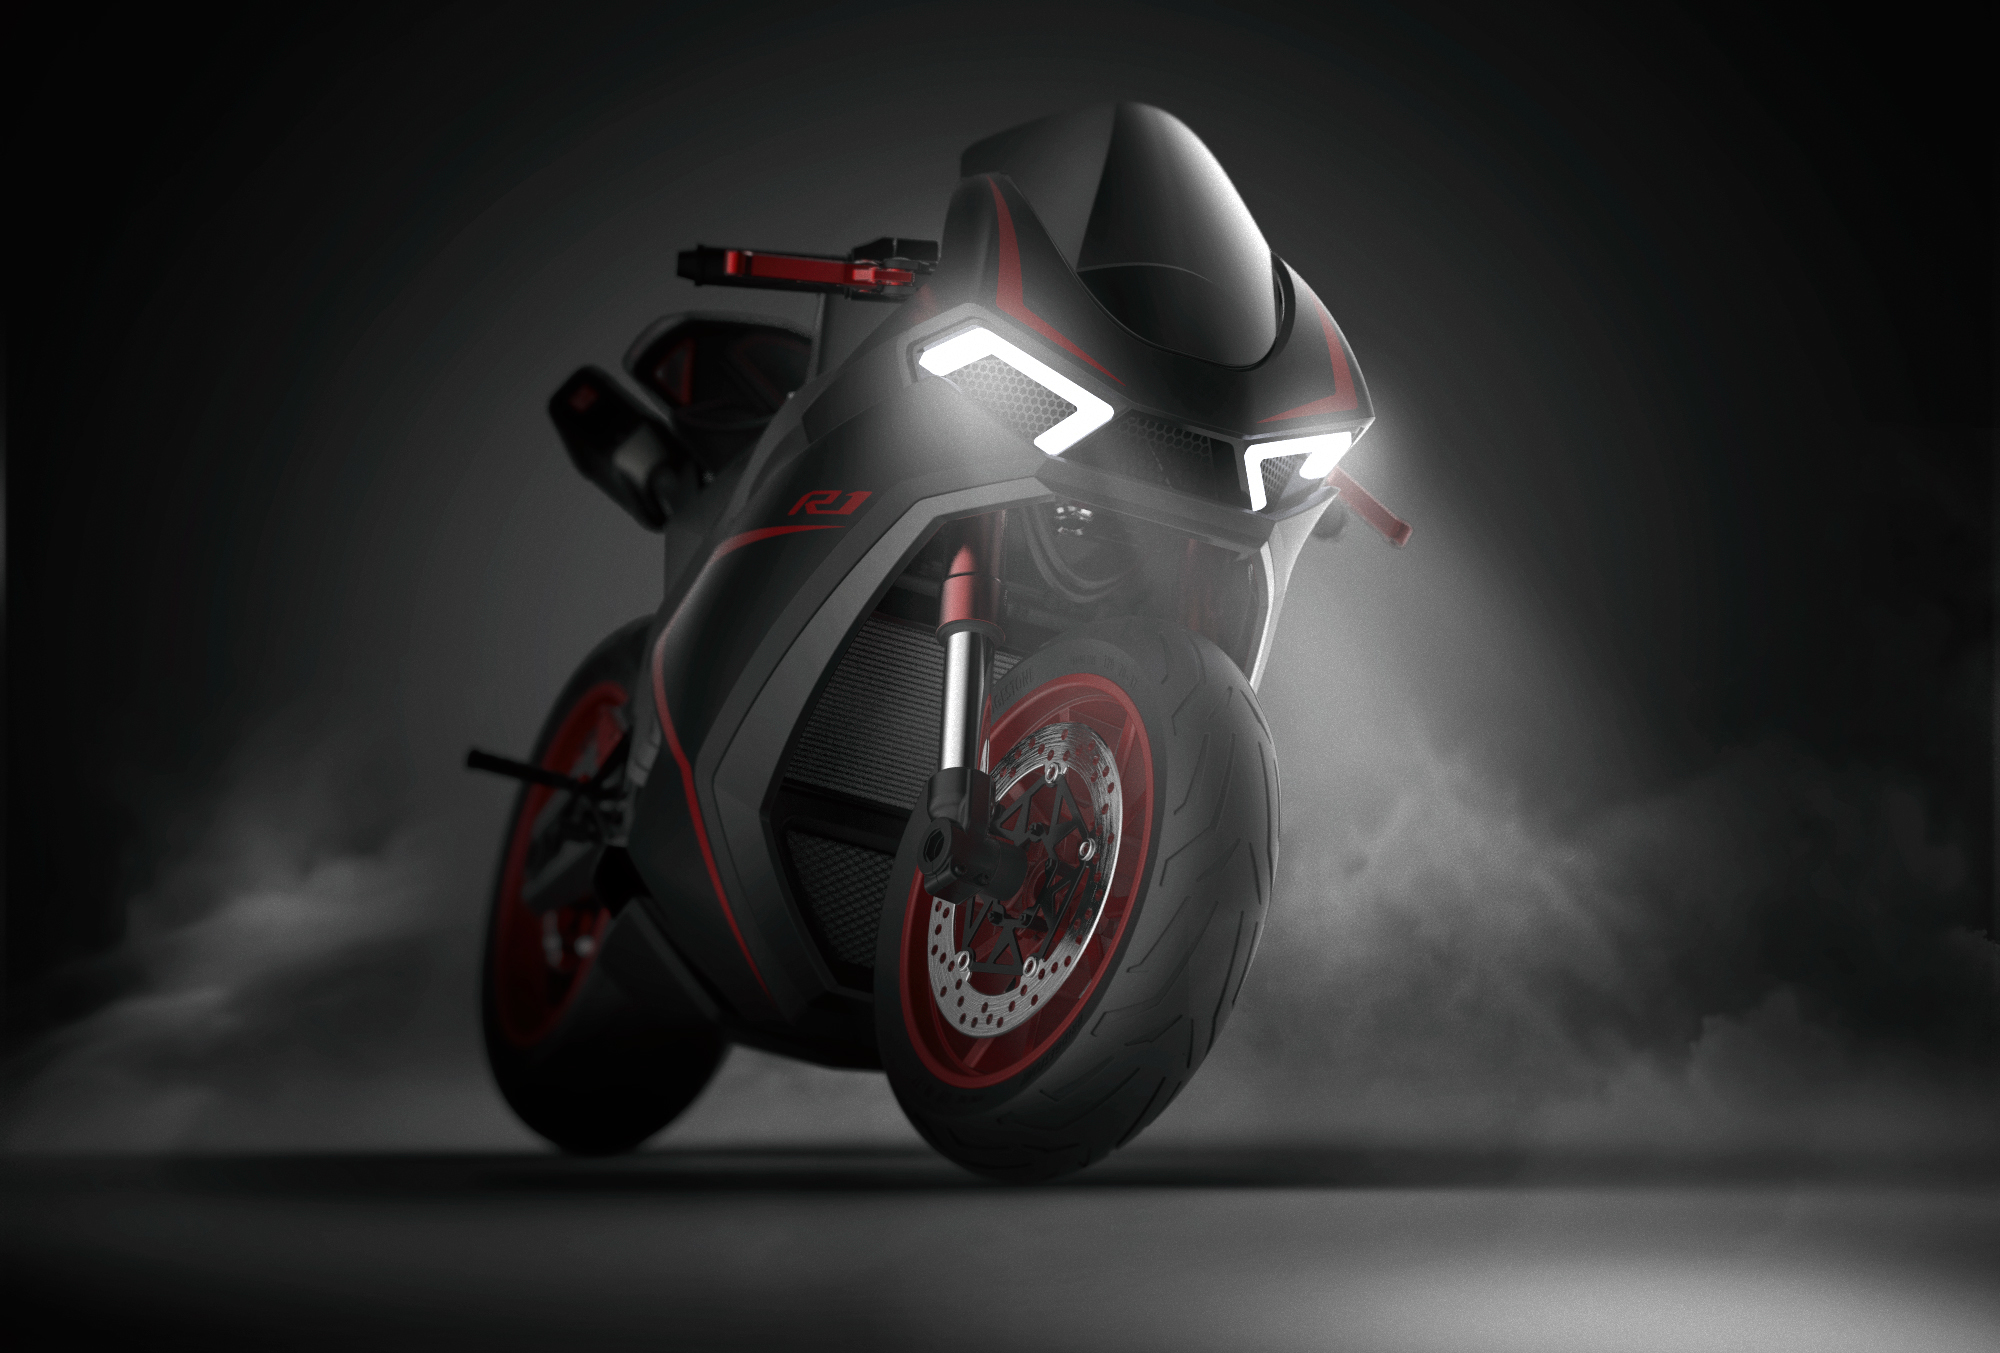 Yamaha R1 Concept, HD Bikes, 4k Wallpapers, Images